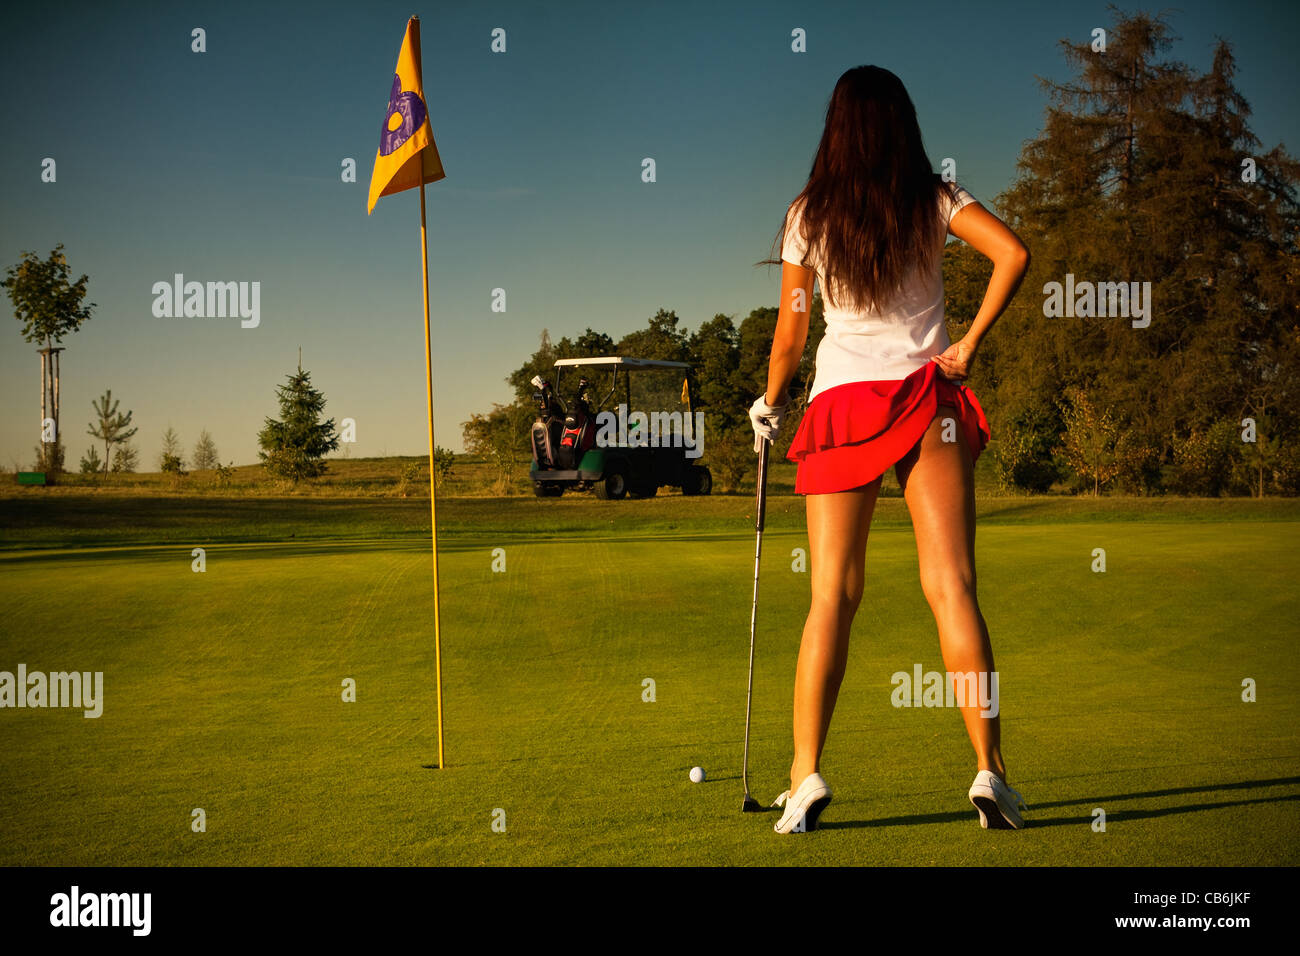 Sexy Girl Playing Golf Rocking the Tatas - Funny Or Die